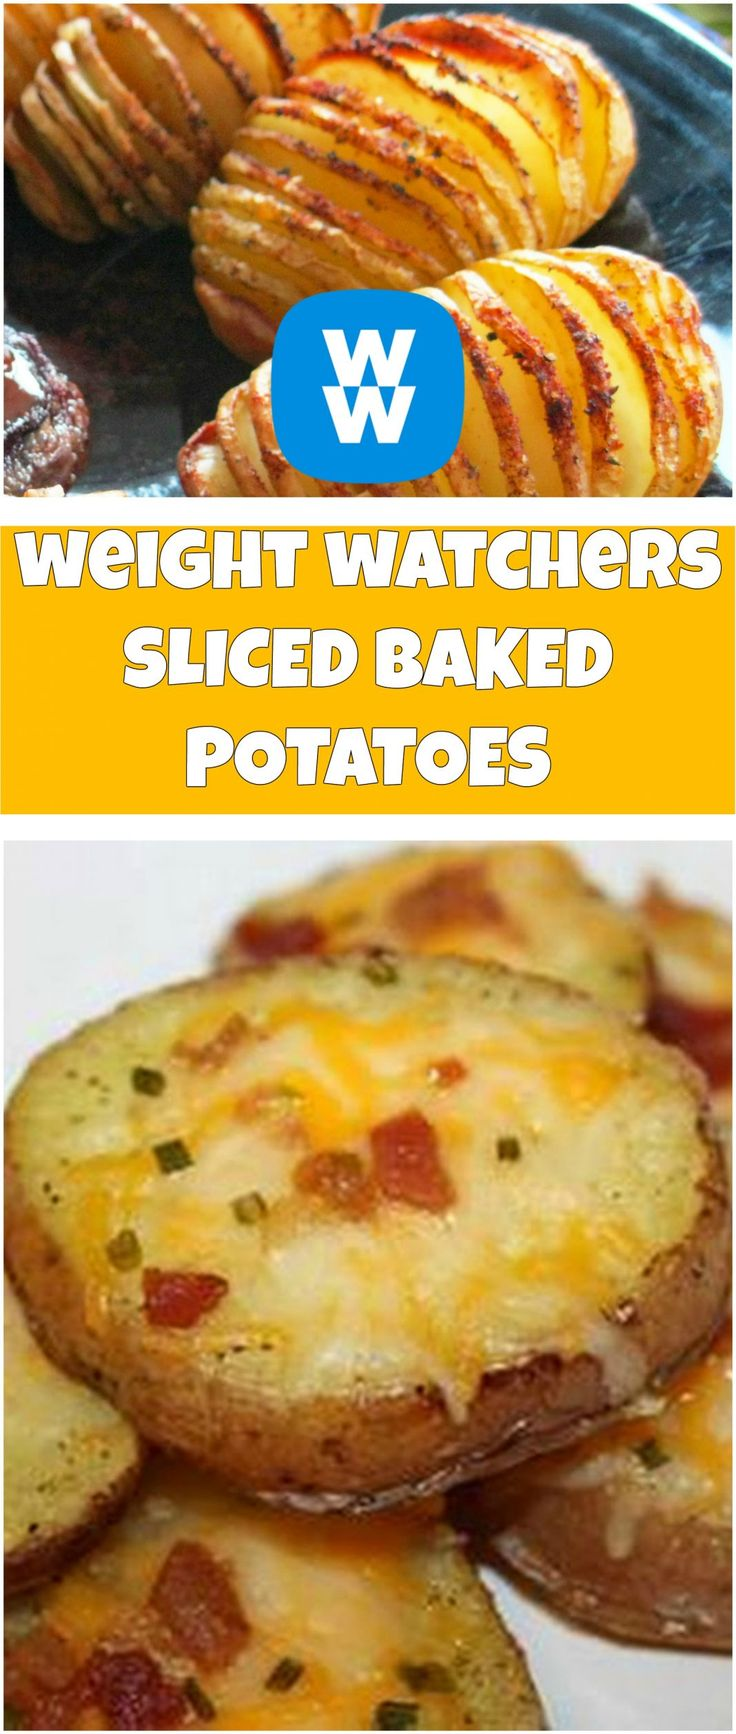 weight watchers SLICED BAKED POTATOES – Just 4 Ingredient   weight watchers cooking